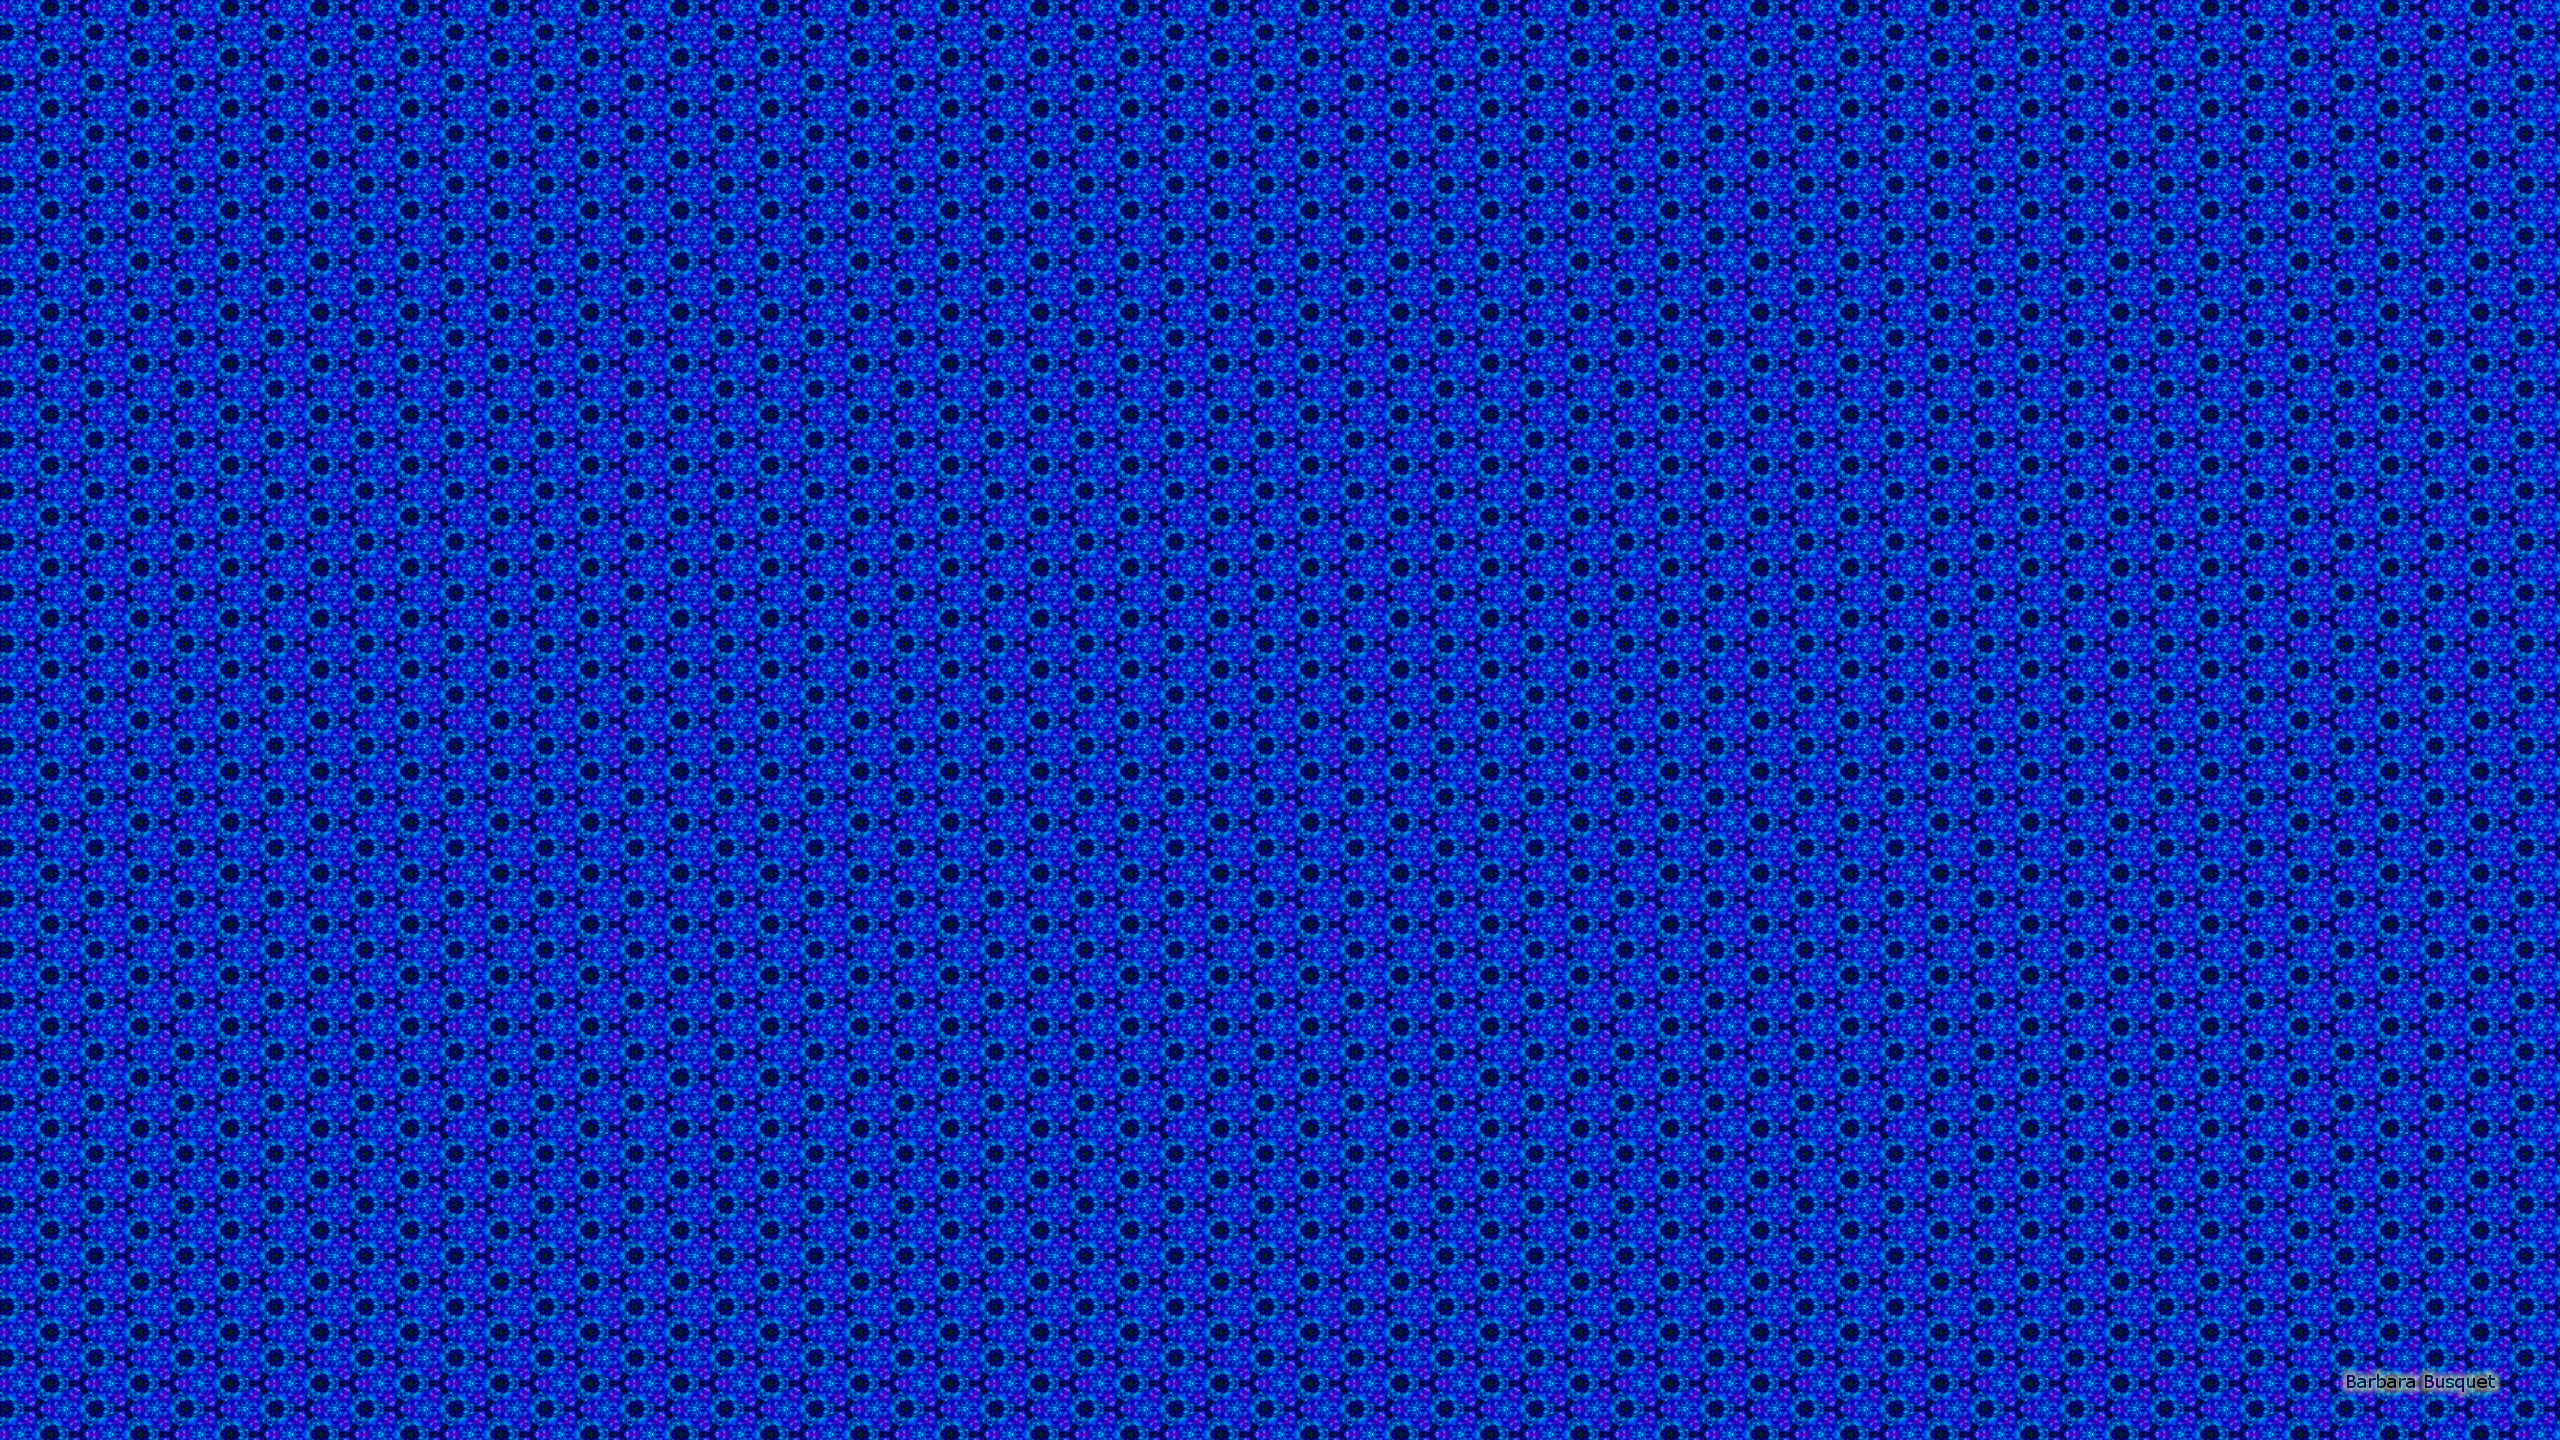 Blue pattern wallpapers barbara 39 s hd wallpapers for Dark pattern background